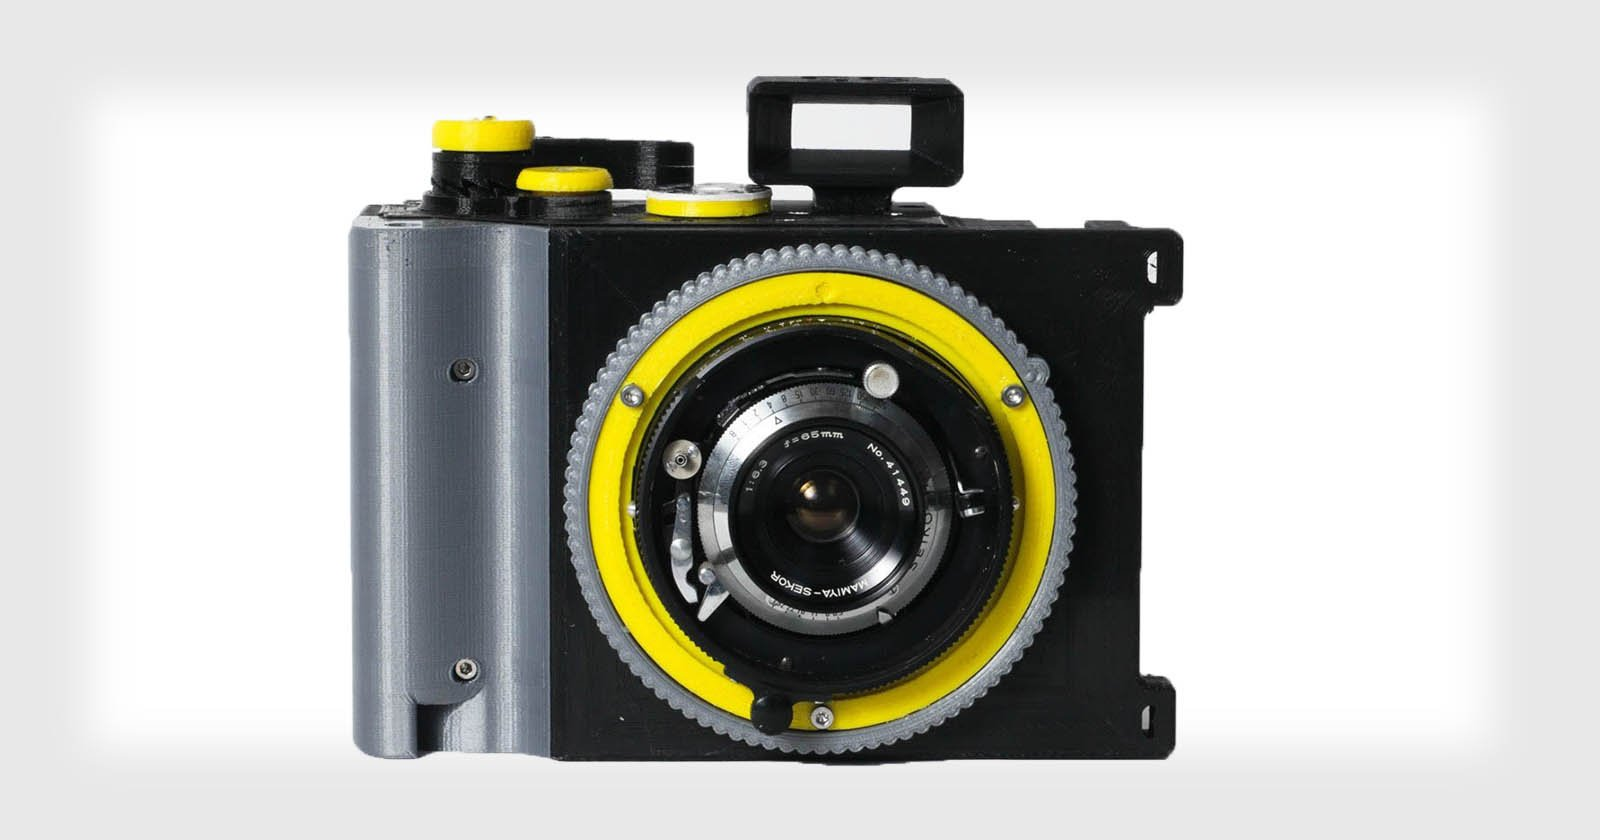 The CAMERADACTYL Brancopan: A 35mm Panoramic Camera You Can Print at Home